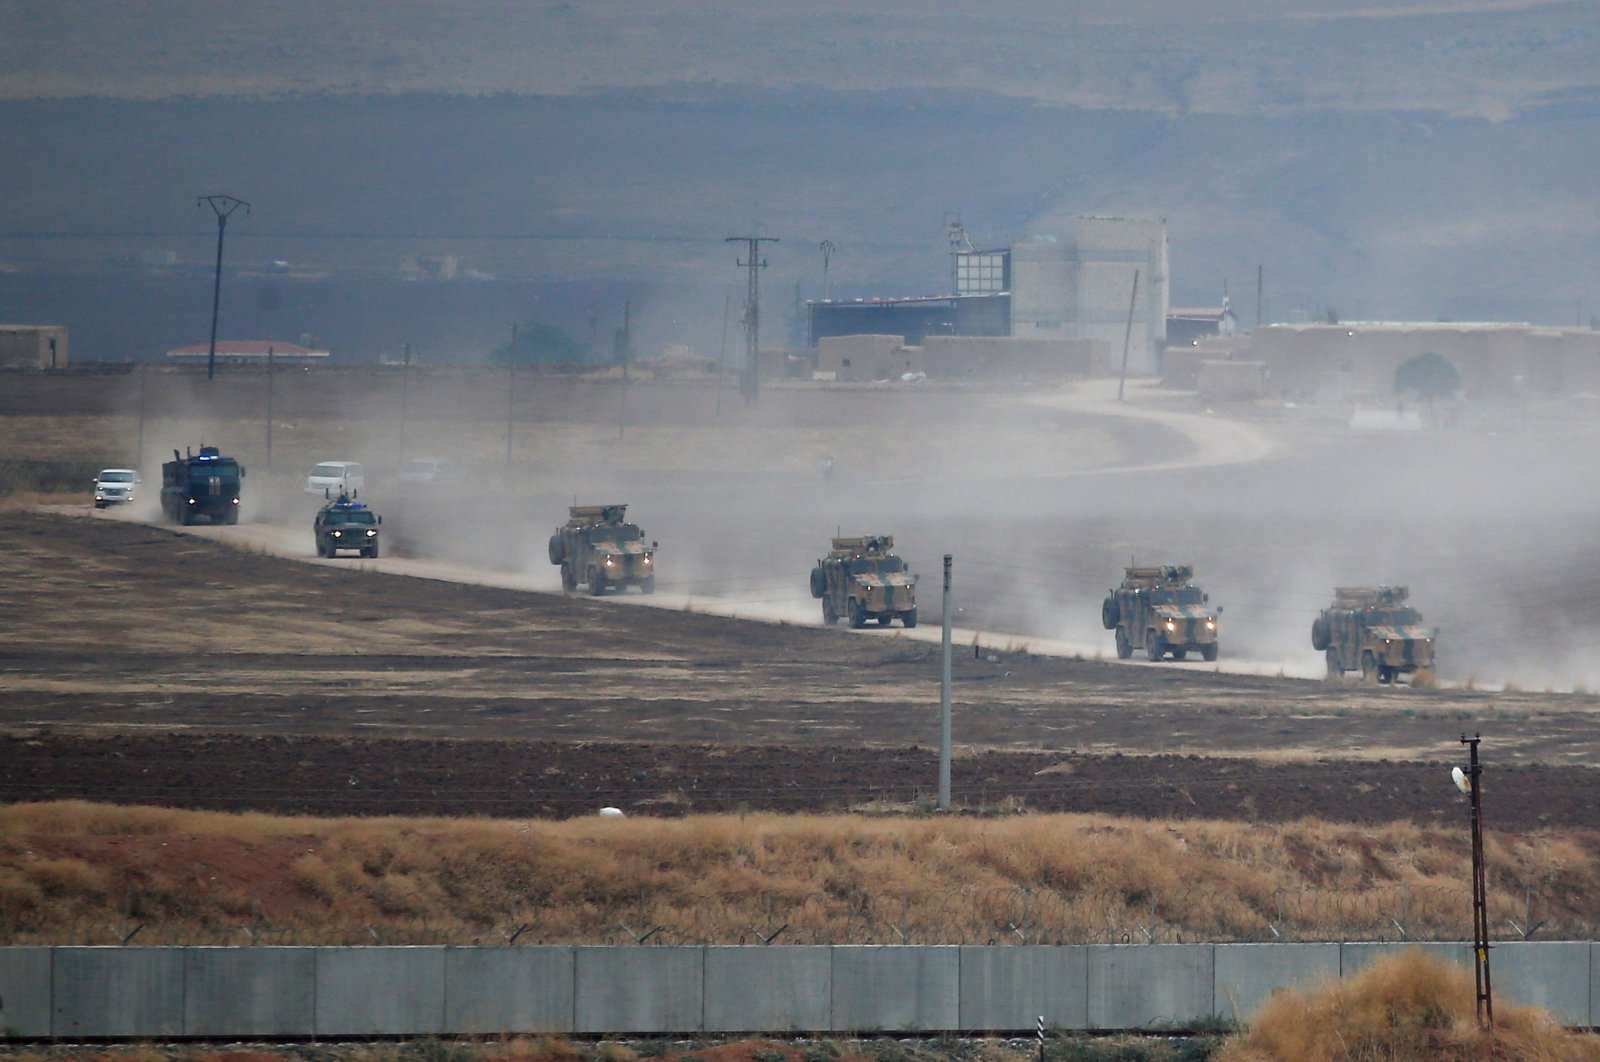 Turkish and Russian military vehicles return following a joint patrol in northeast Syria, as they are pictured near the Turkish border town of Kızıltepe in Mardin province, Turkey, Nov. 1, 2019. (Reuters File Photo)